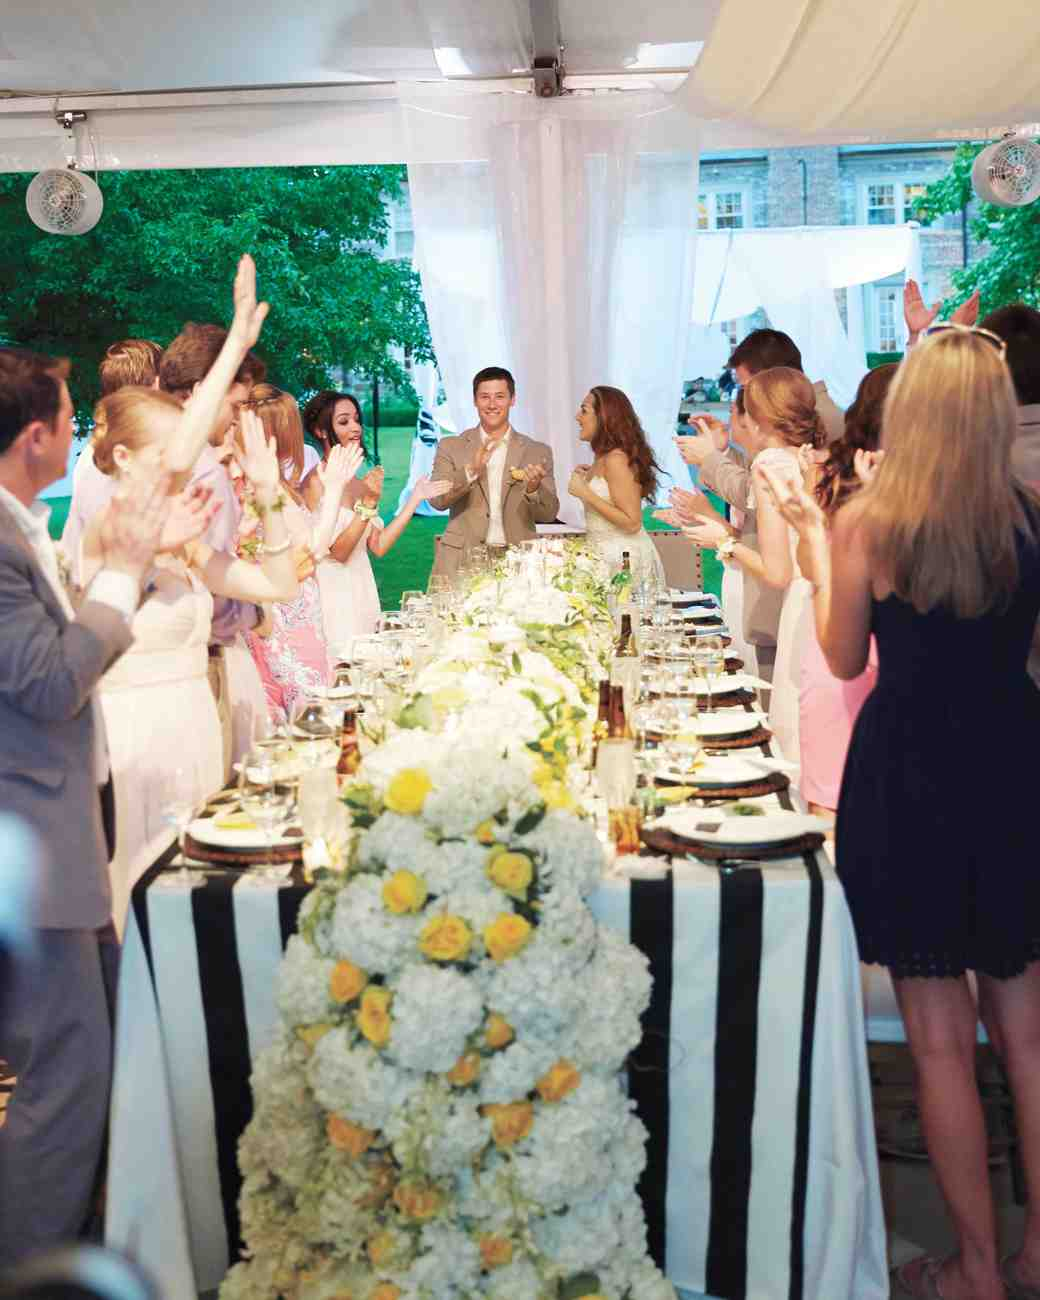 merin-ryan-real-wedding-reception-guests-cheering.jpg